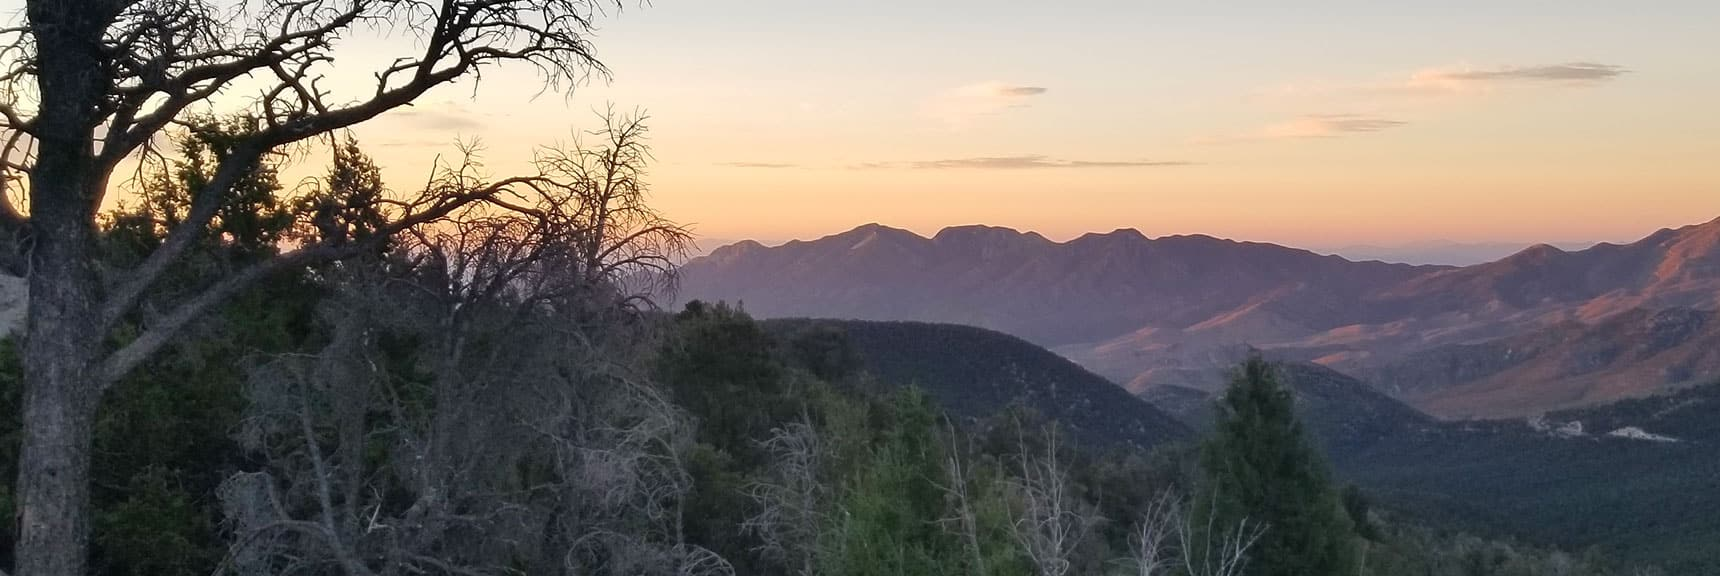 Sunrise View from North Loop Trailhead Back Toward La Madre Mountain